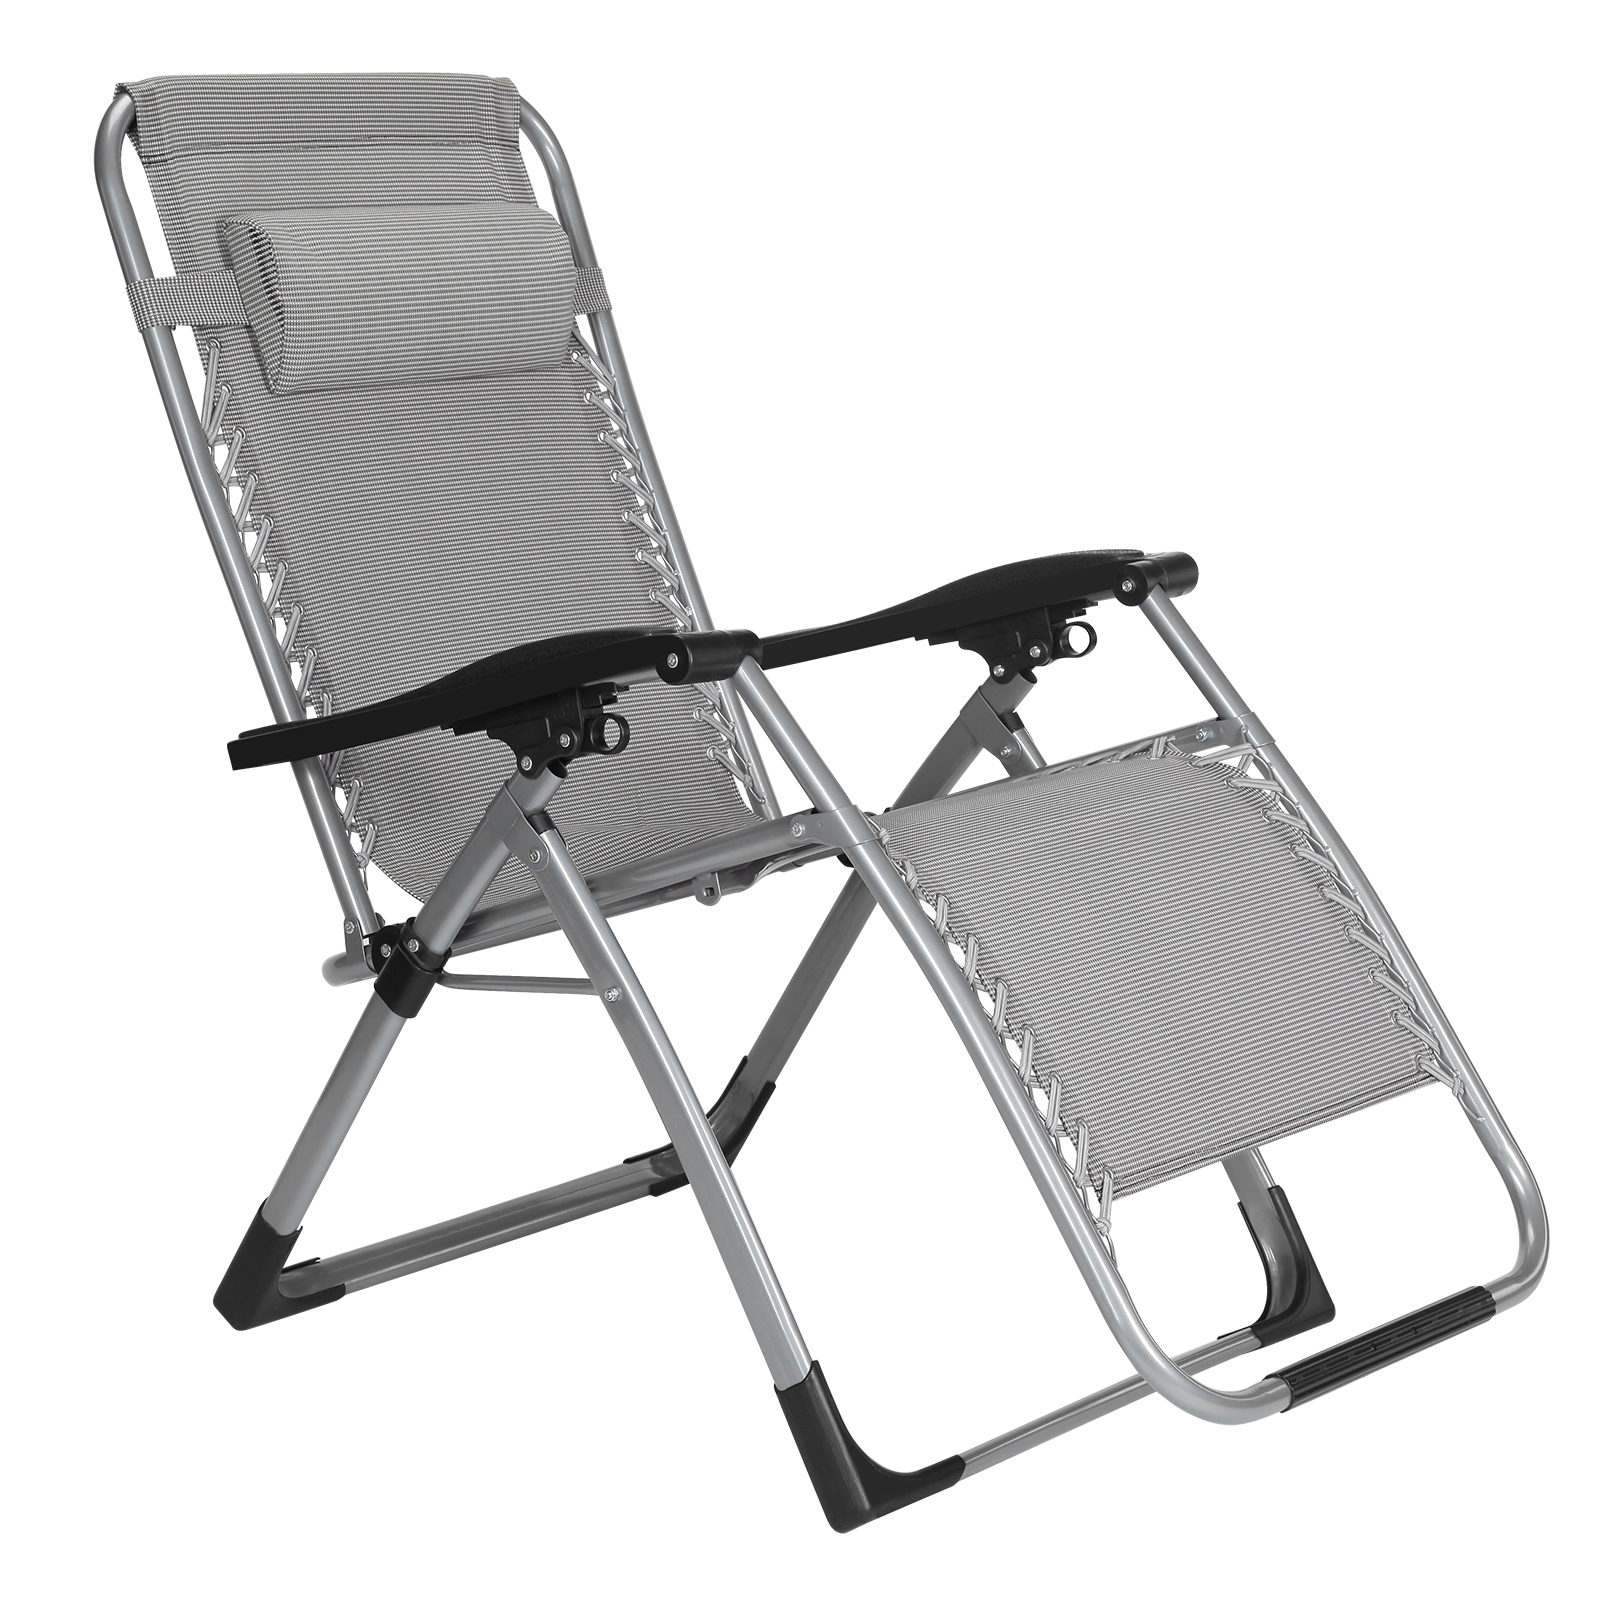 Portable Zero Gravity Chair Folding Recliner Camping Chair